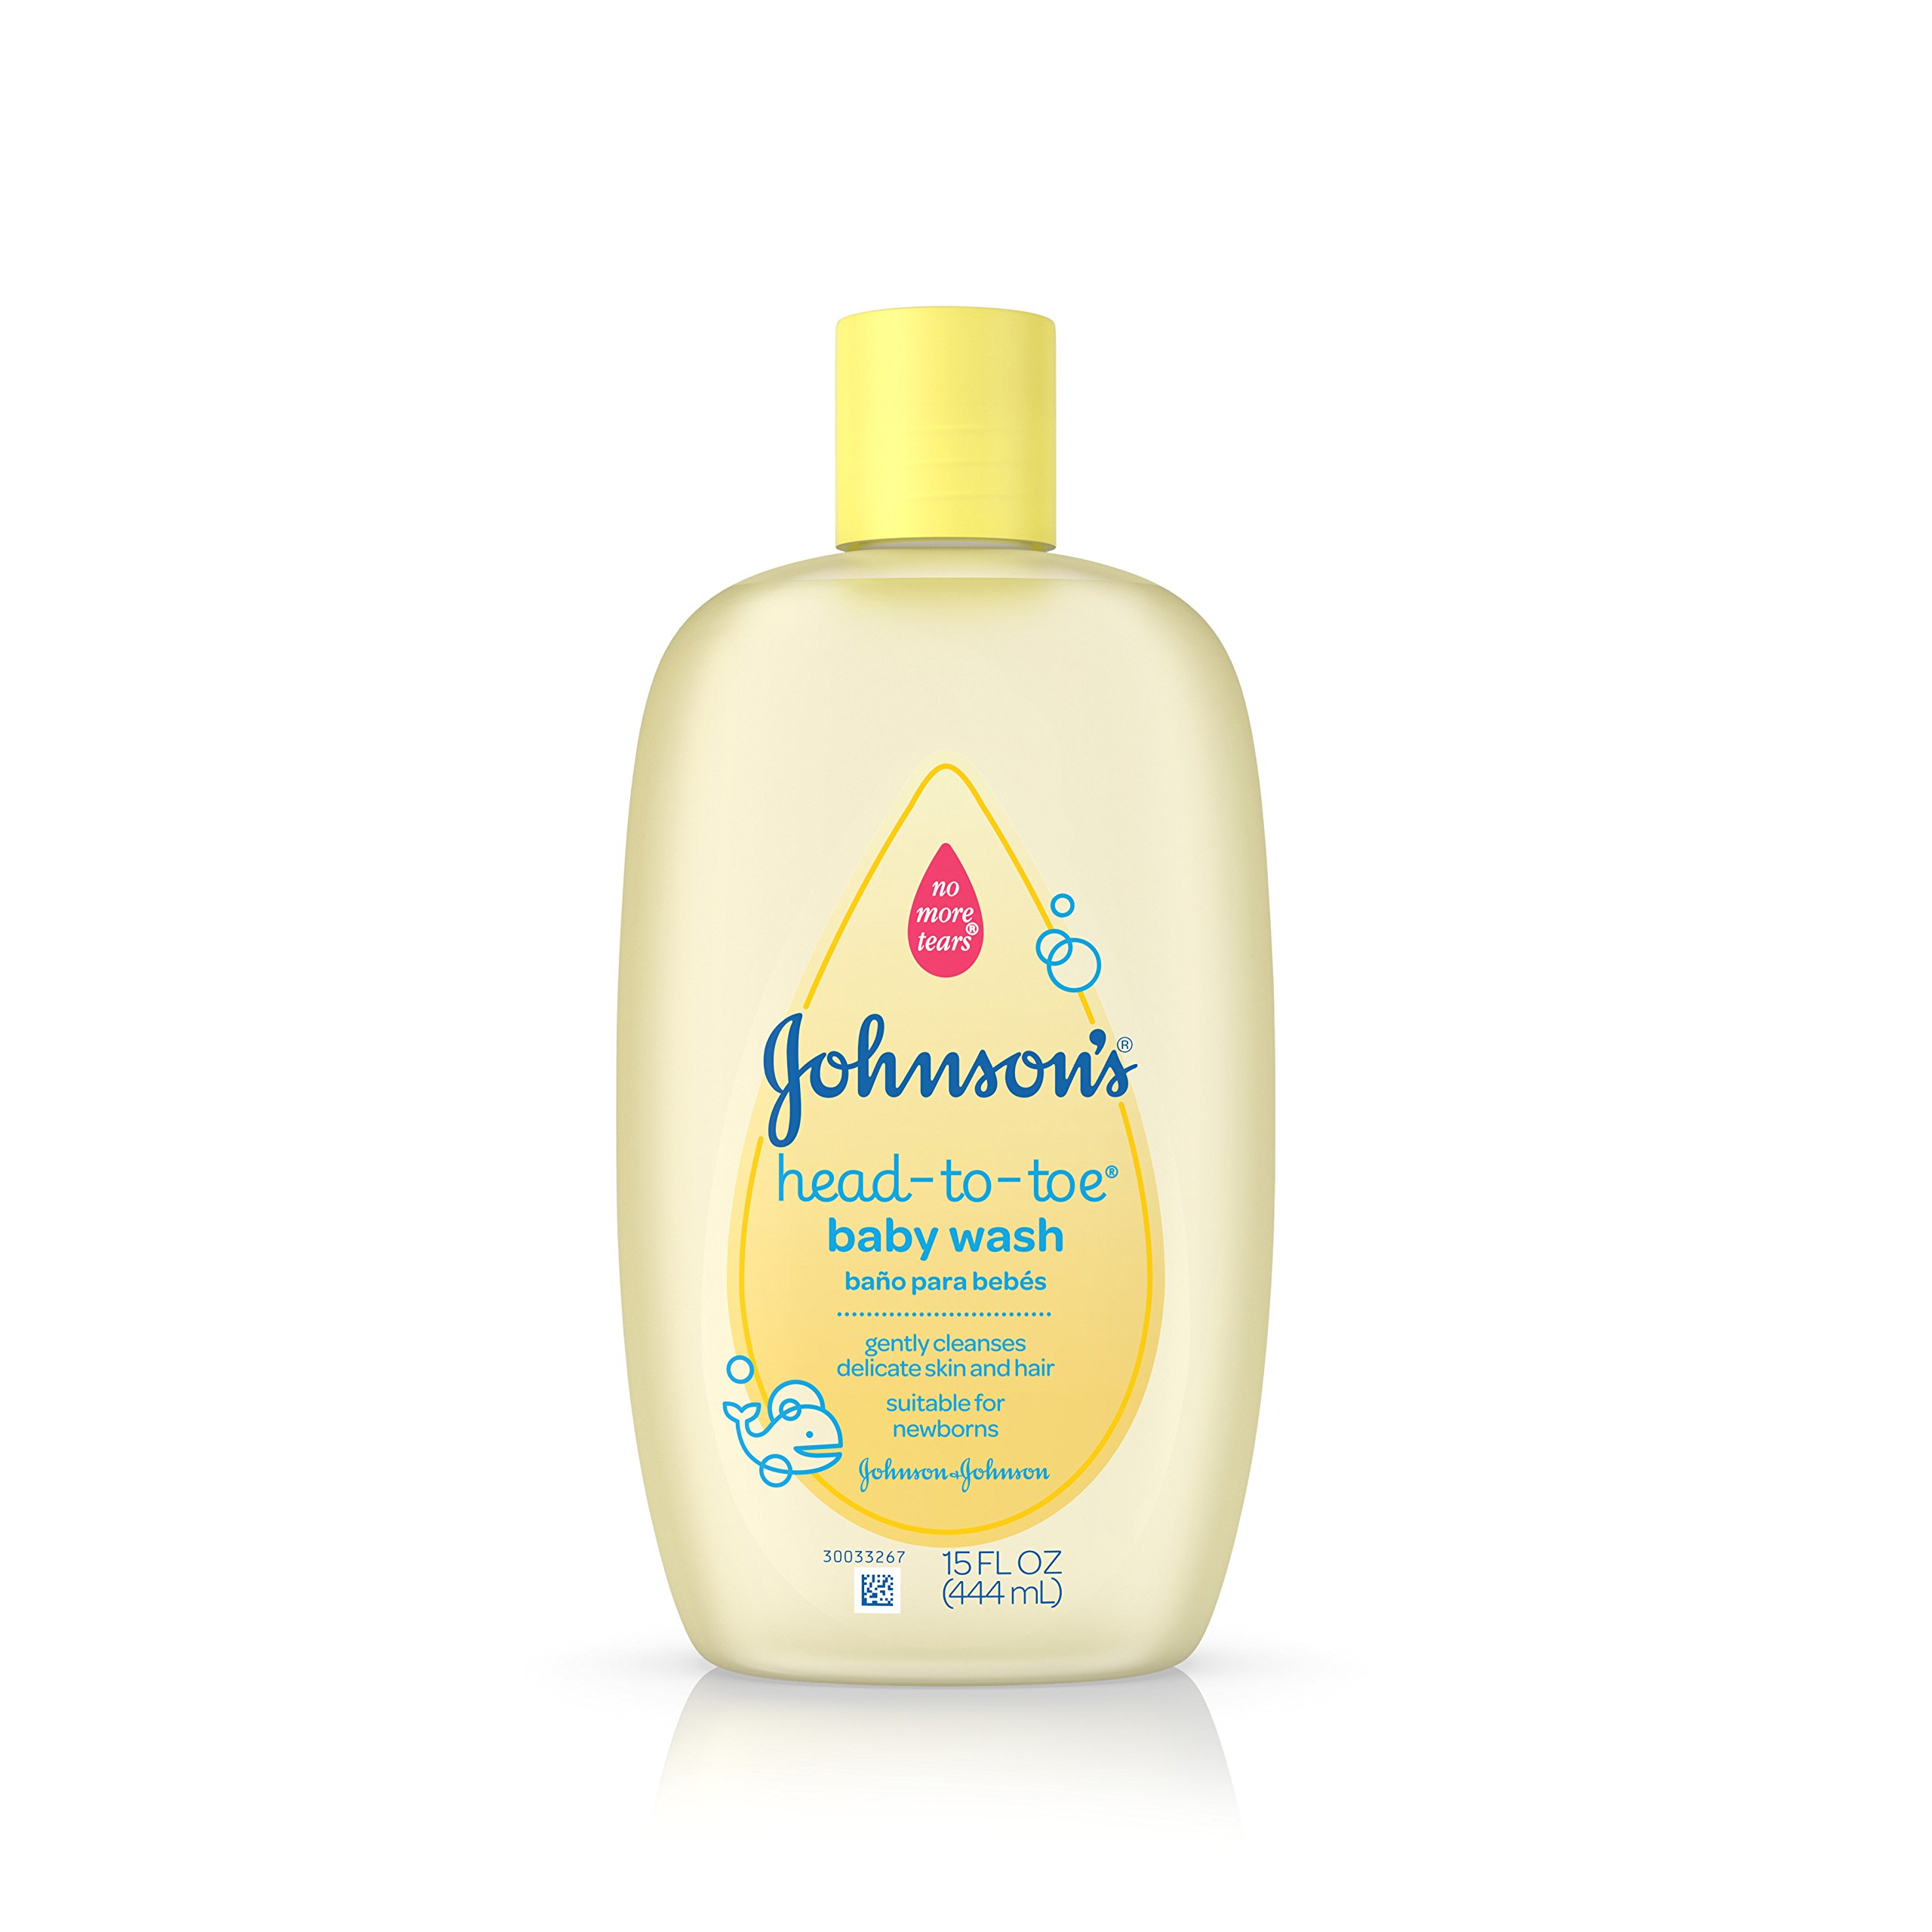 Johnson's Head-To-Toe Baby Wash, Gentle Cleanser, 15 Fl. Oz. (Pack of 2) by Johnson's Baby